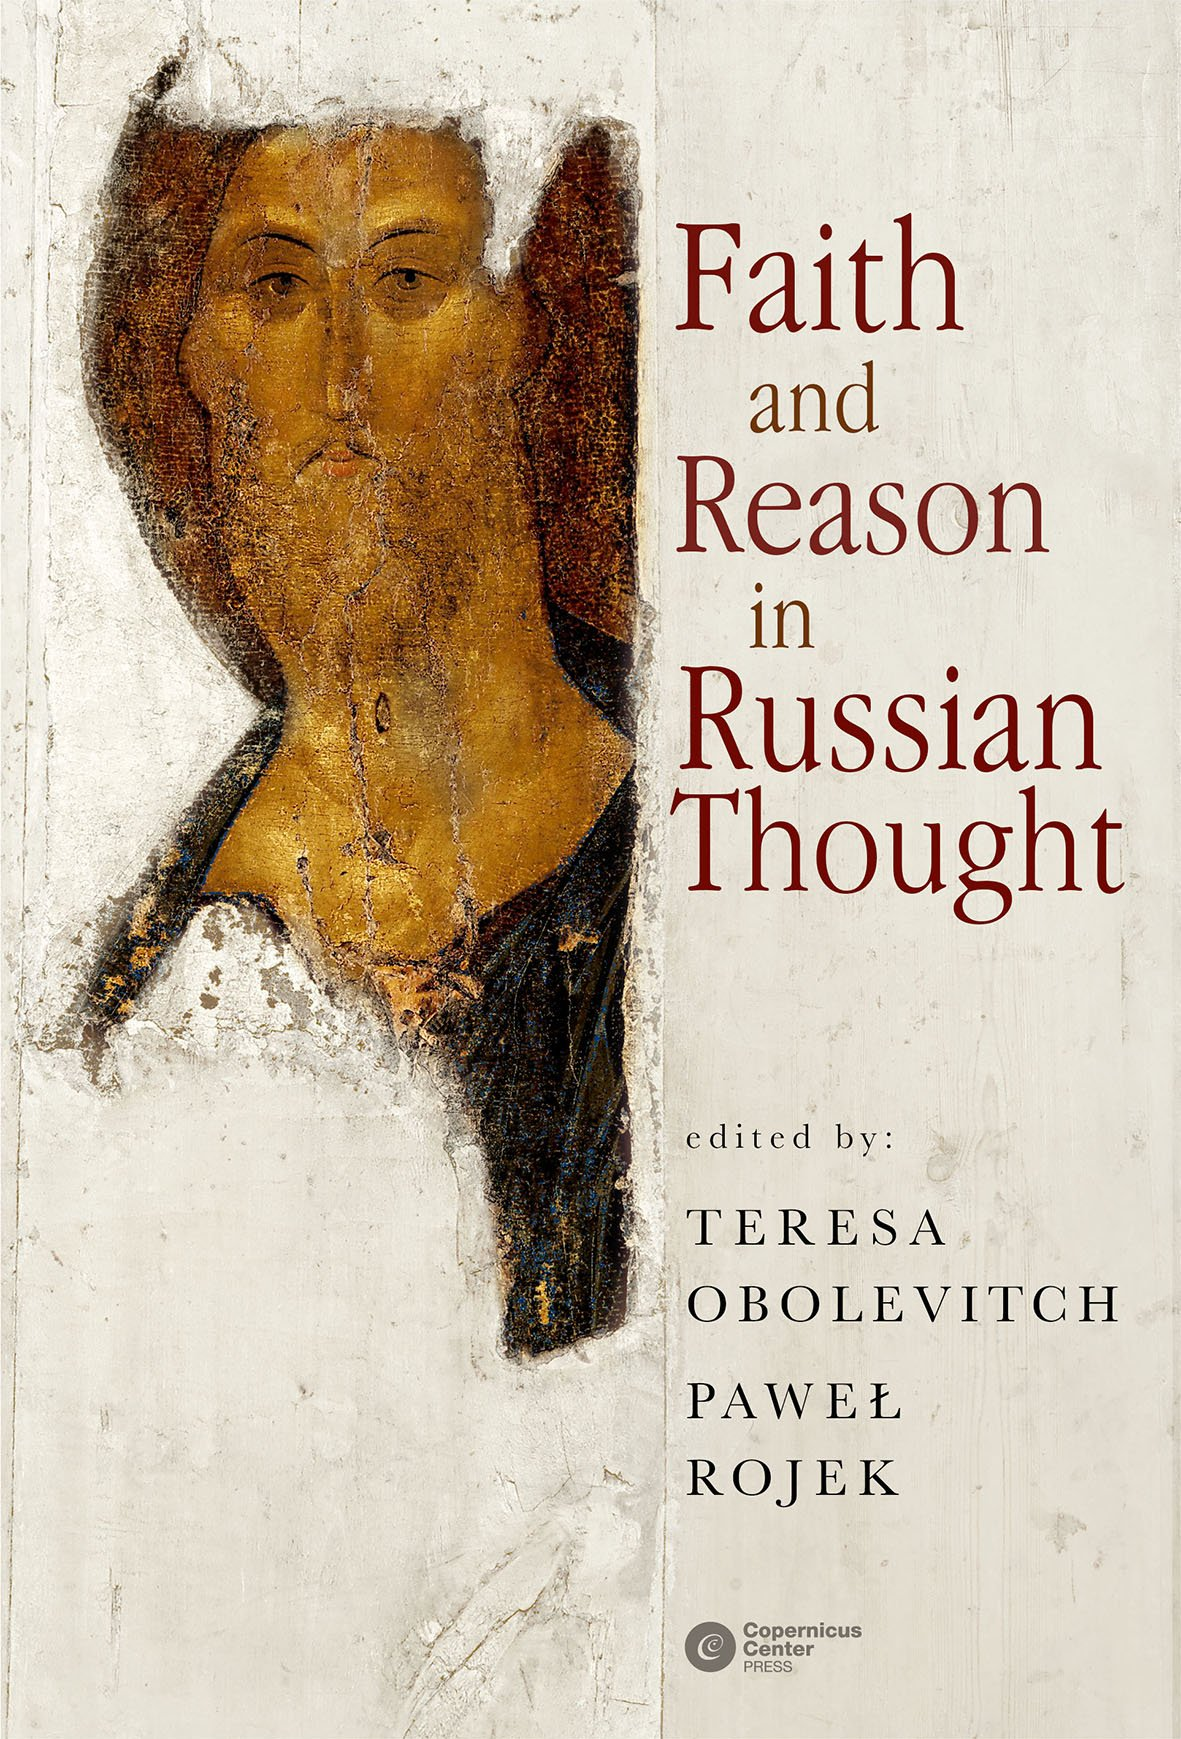 Faith and Reason in Russian Thought - Ebook (Książka na Kindle) do pobrania w formacie MOBI